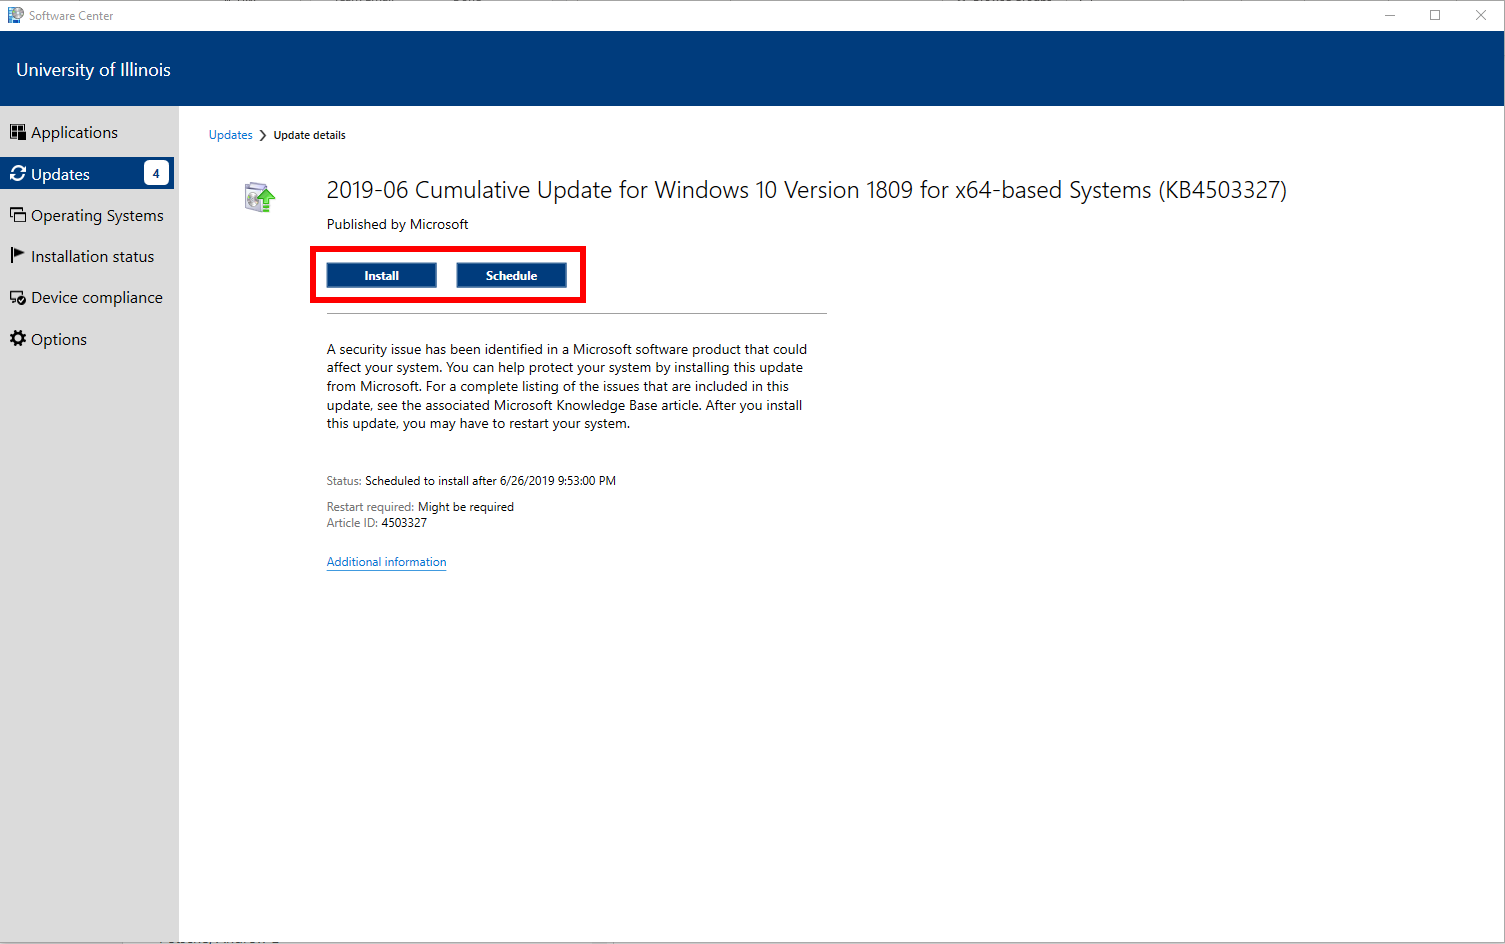 Install and Schedule button are highlighted on the individual update page within Software Center